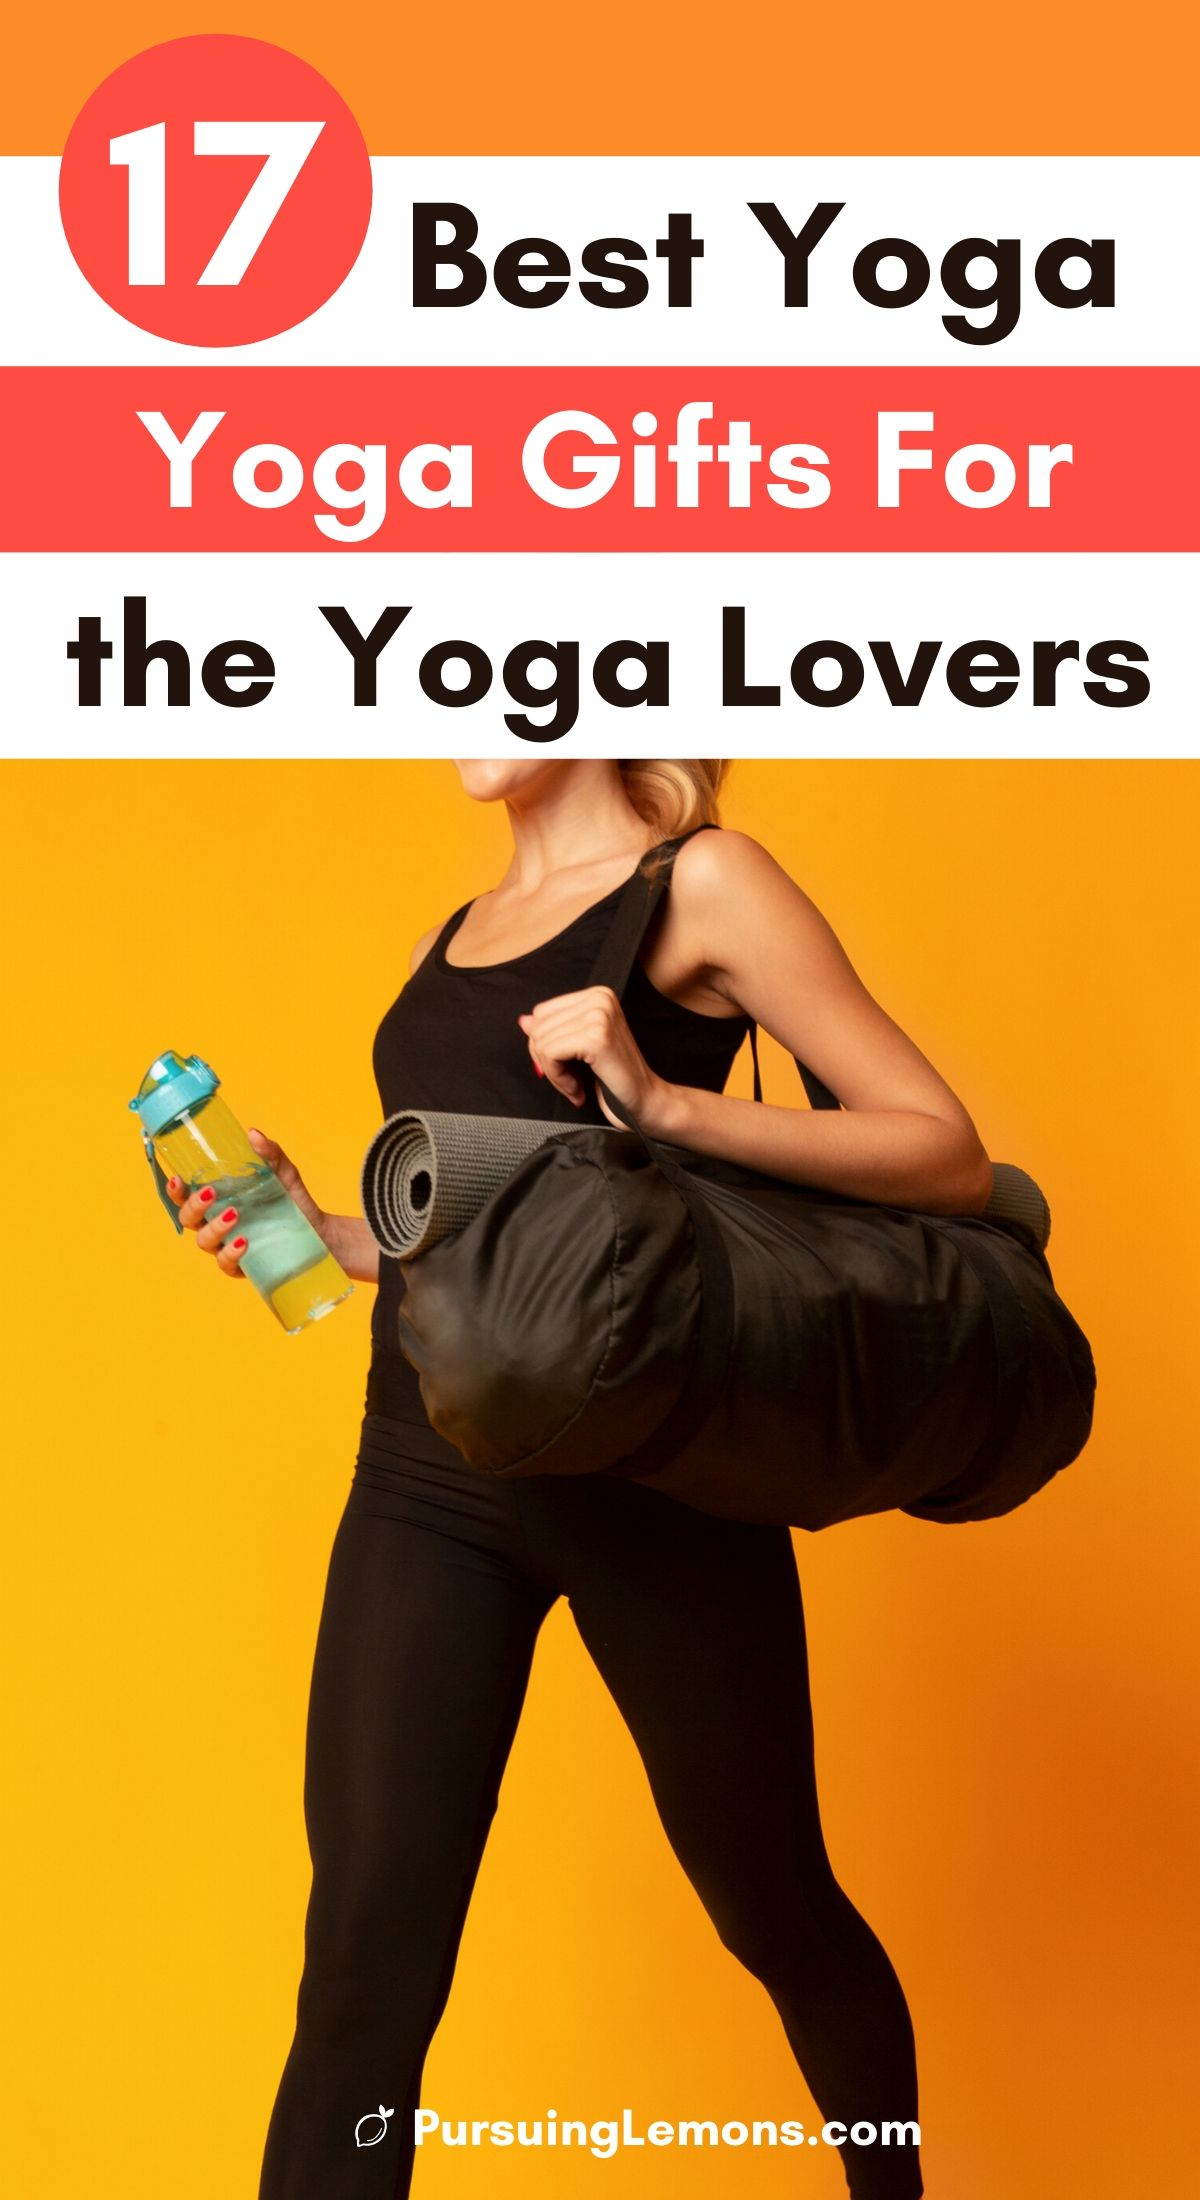 Perfect for the yoga lovers in your life! This yoga holiday gift ideas include everything from cute leggings to non-slip mat to cute yoga socks, you can definitely find something in this list for your yoga friend! If you don't know what to get, just get a yoga mat! #yogagiftguide #yogagifts #yogagiftideas